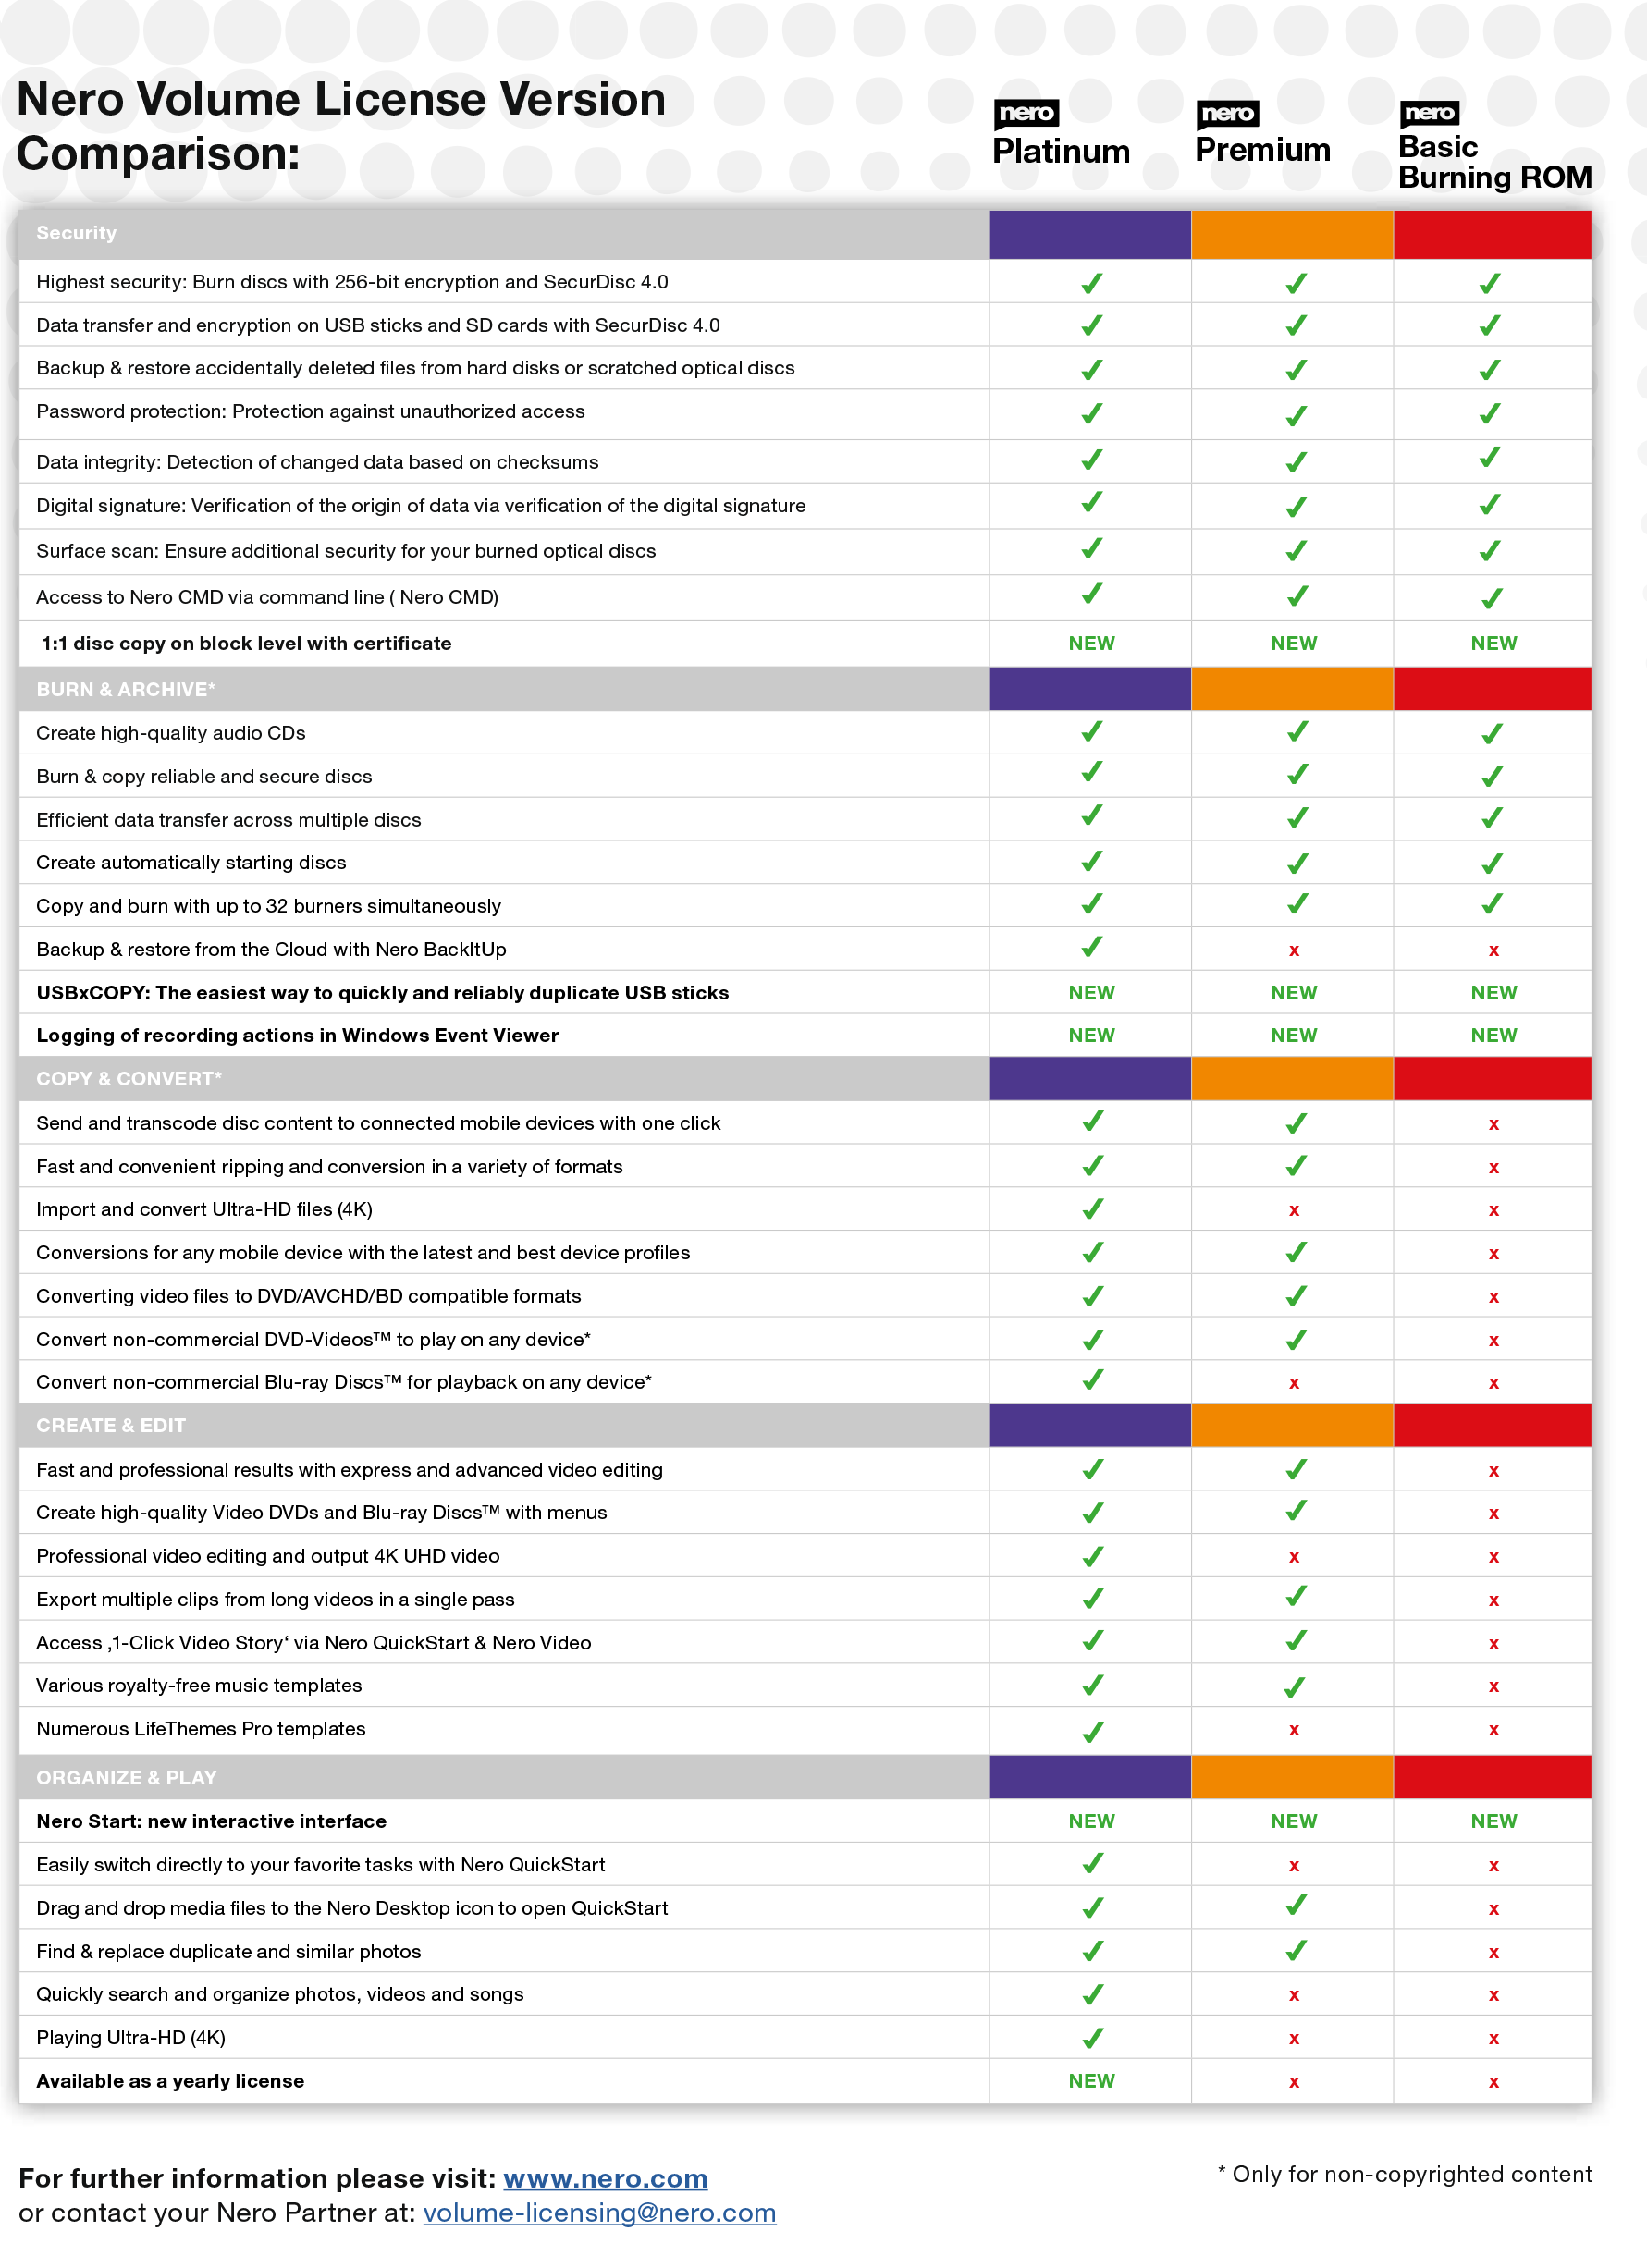 Comparison Chart - Volume License